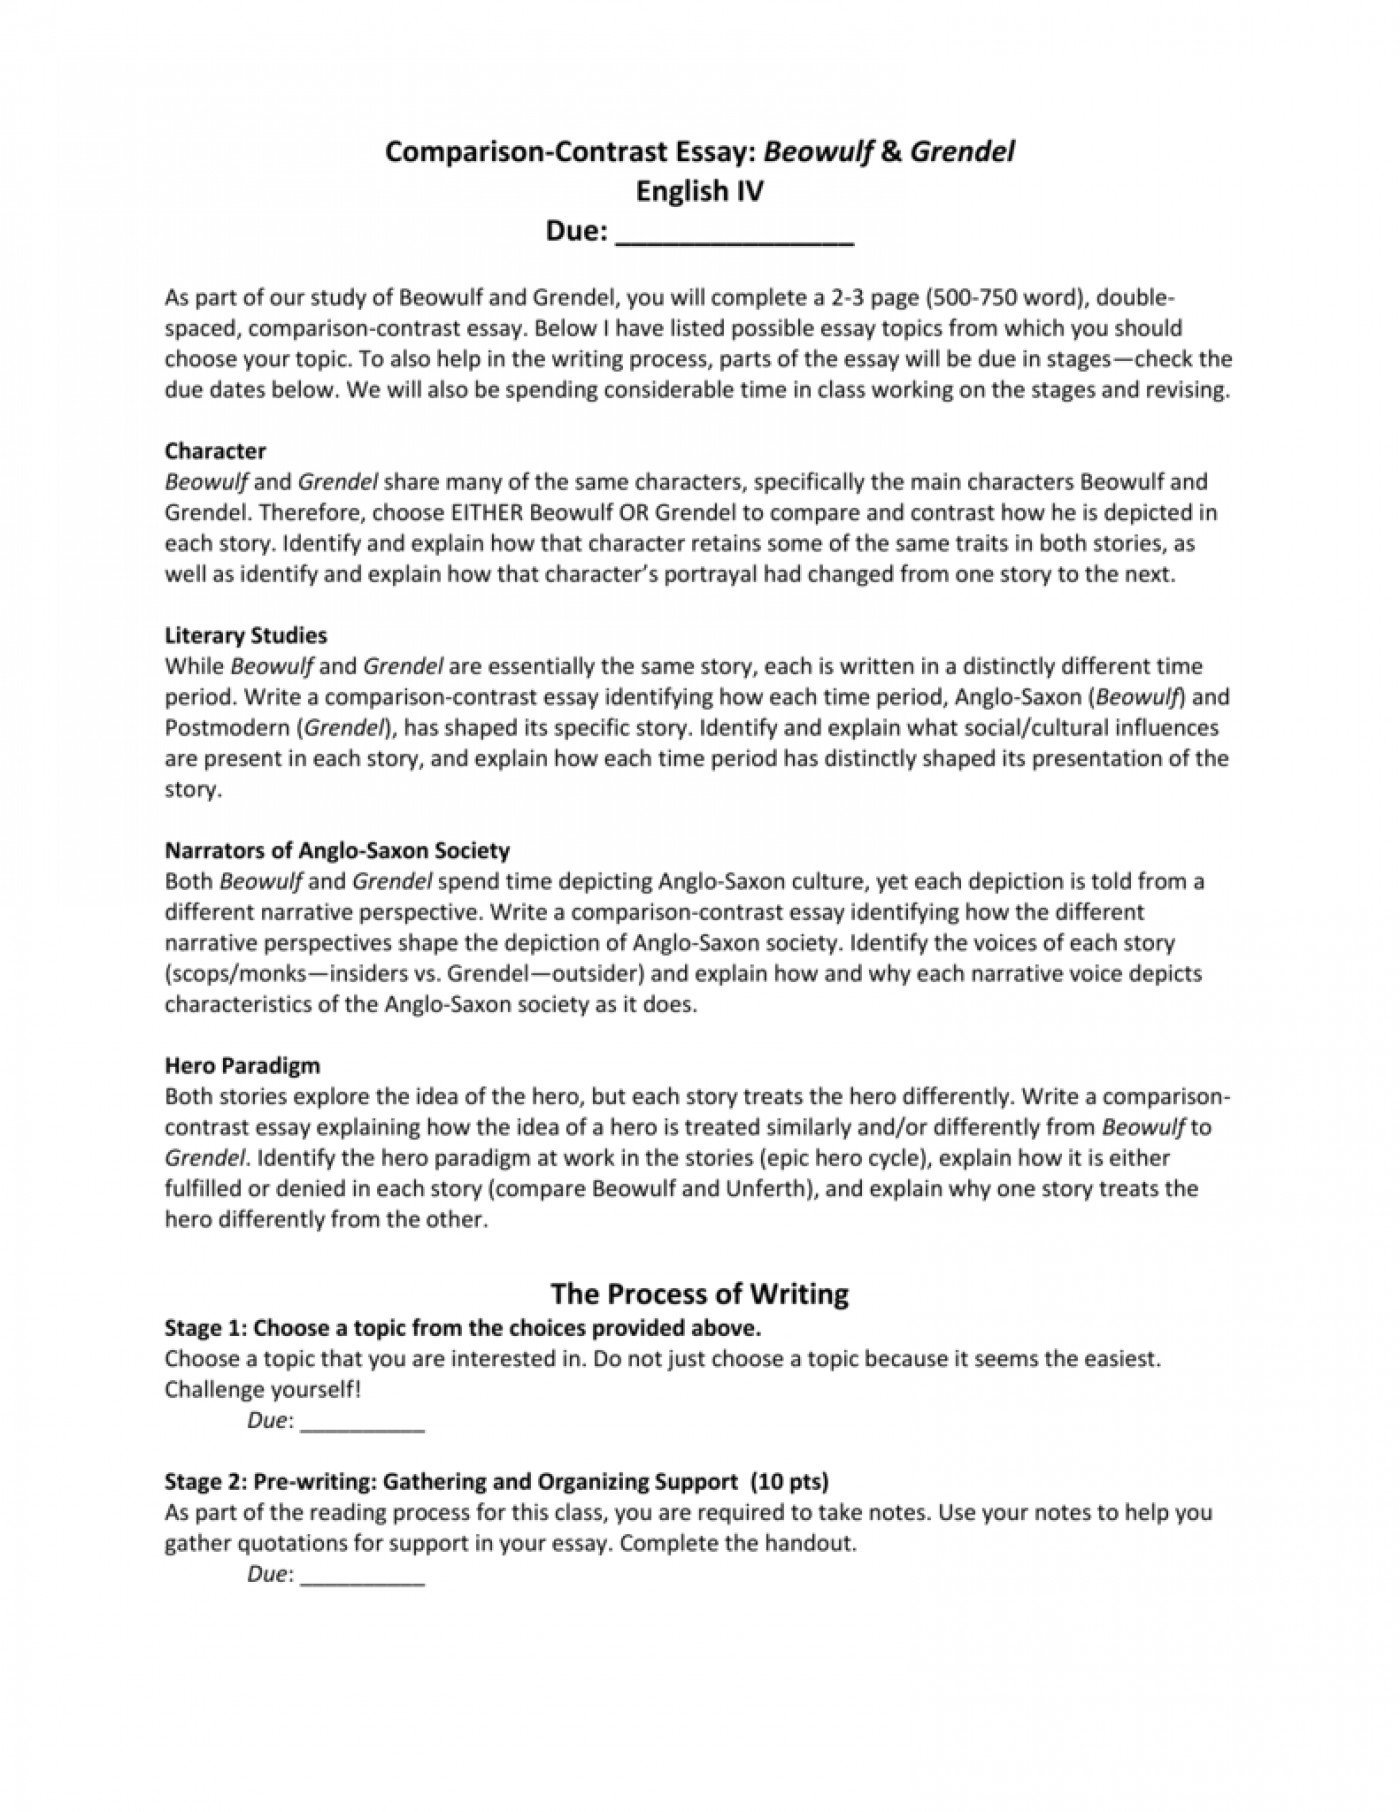 012 Good Compare And Contrast Essay Example 008061732 1 Unbelievable The Great Gatsby Tom Examples Middle School Movie Book 1400